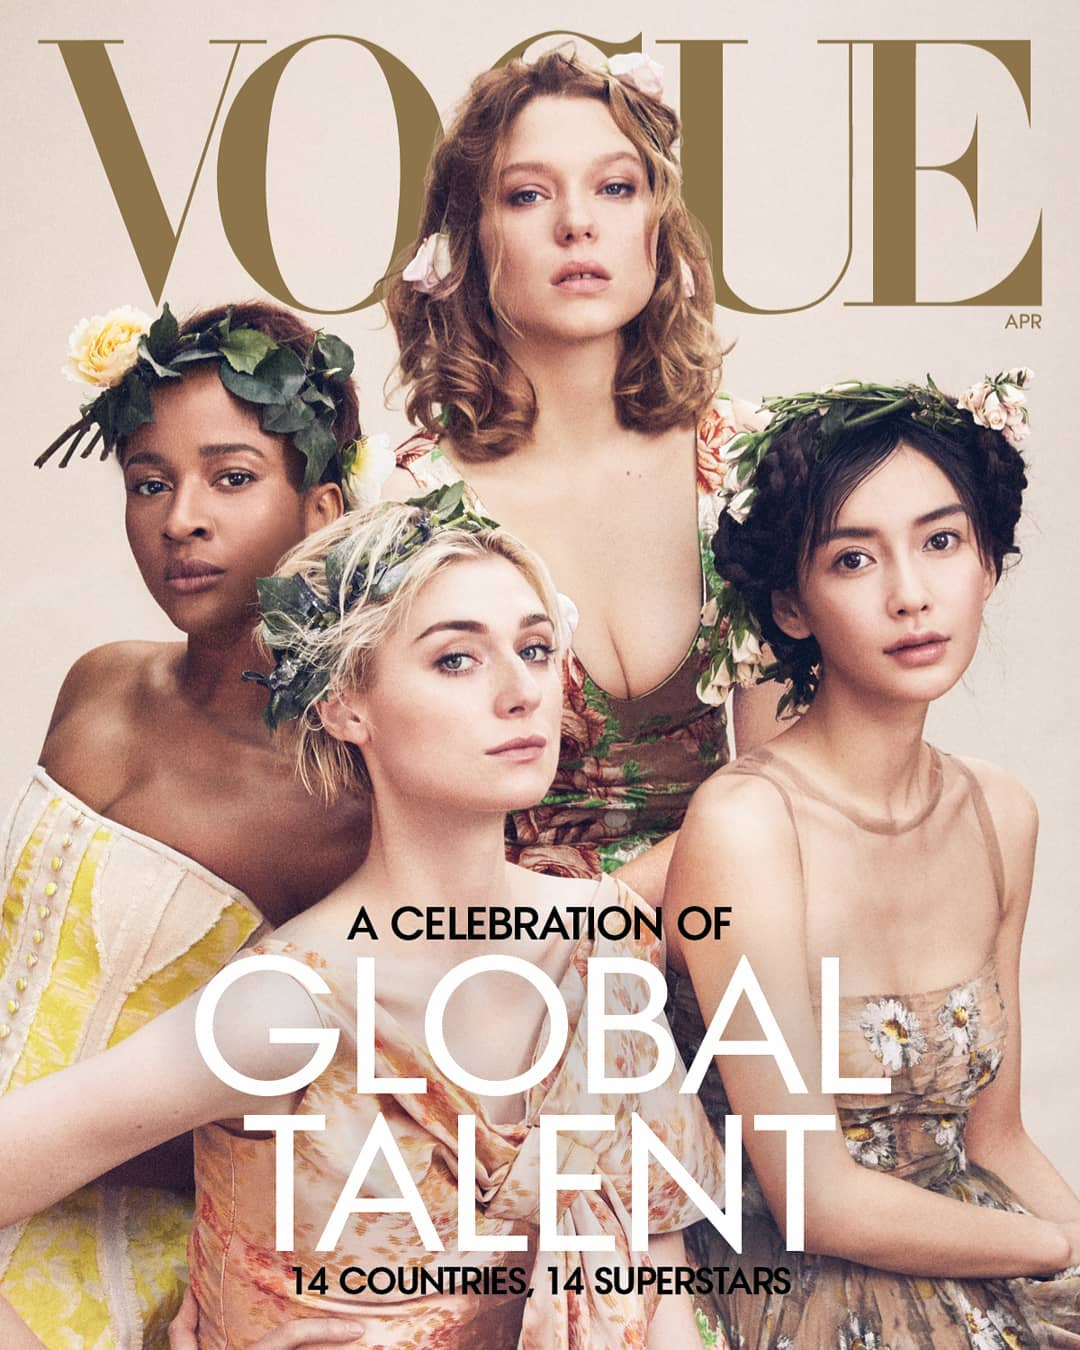 Nigeria To The World! Adesua Etomi On The Cover Of Vogue Magazine's Latest Issue